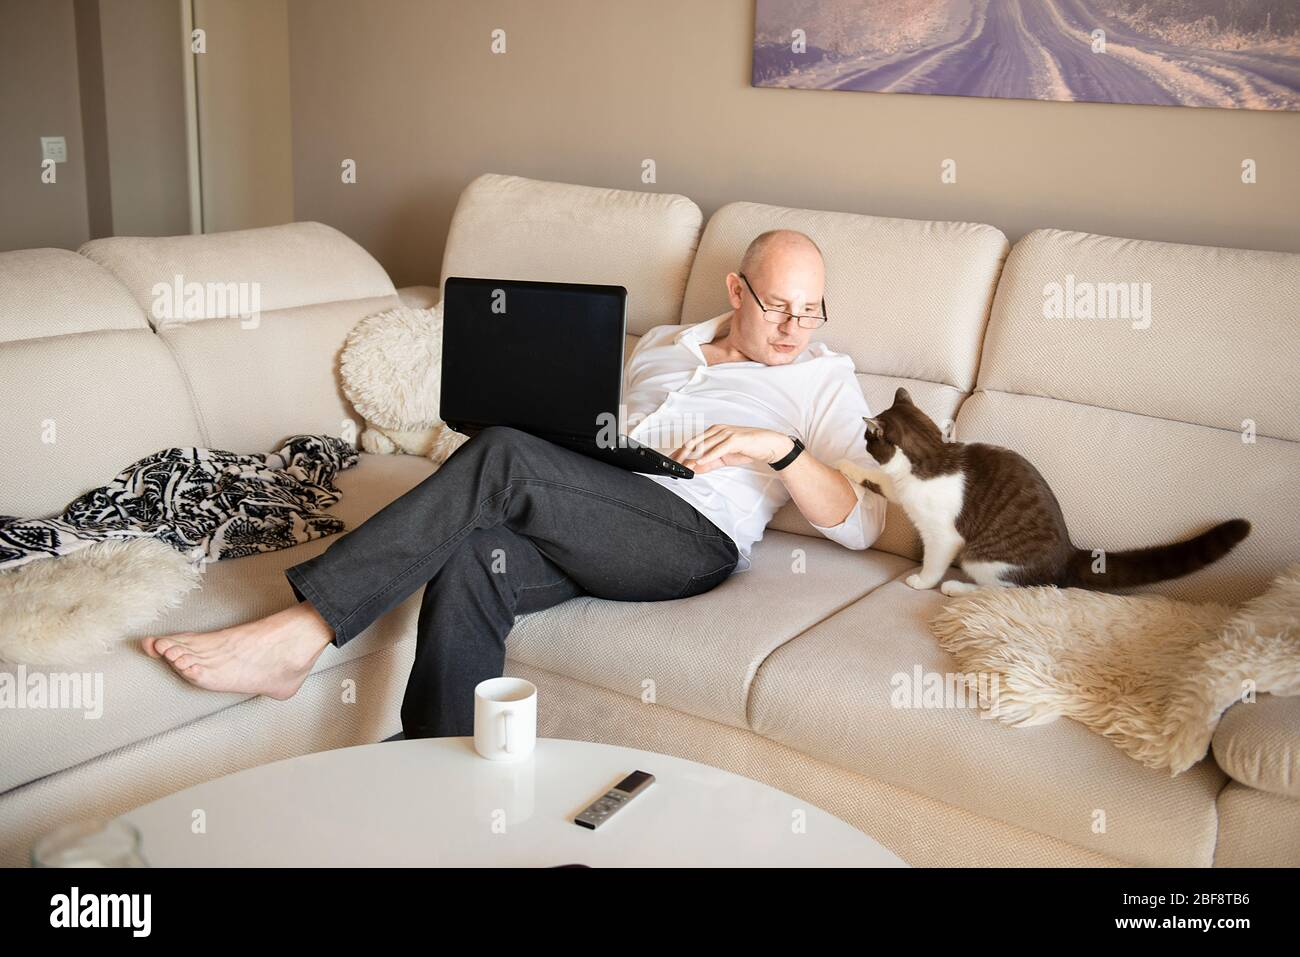 mature man using laptop and playing with cute cat on sofa at home during quarantine of coronavirus covid-19 Stock Photo